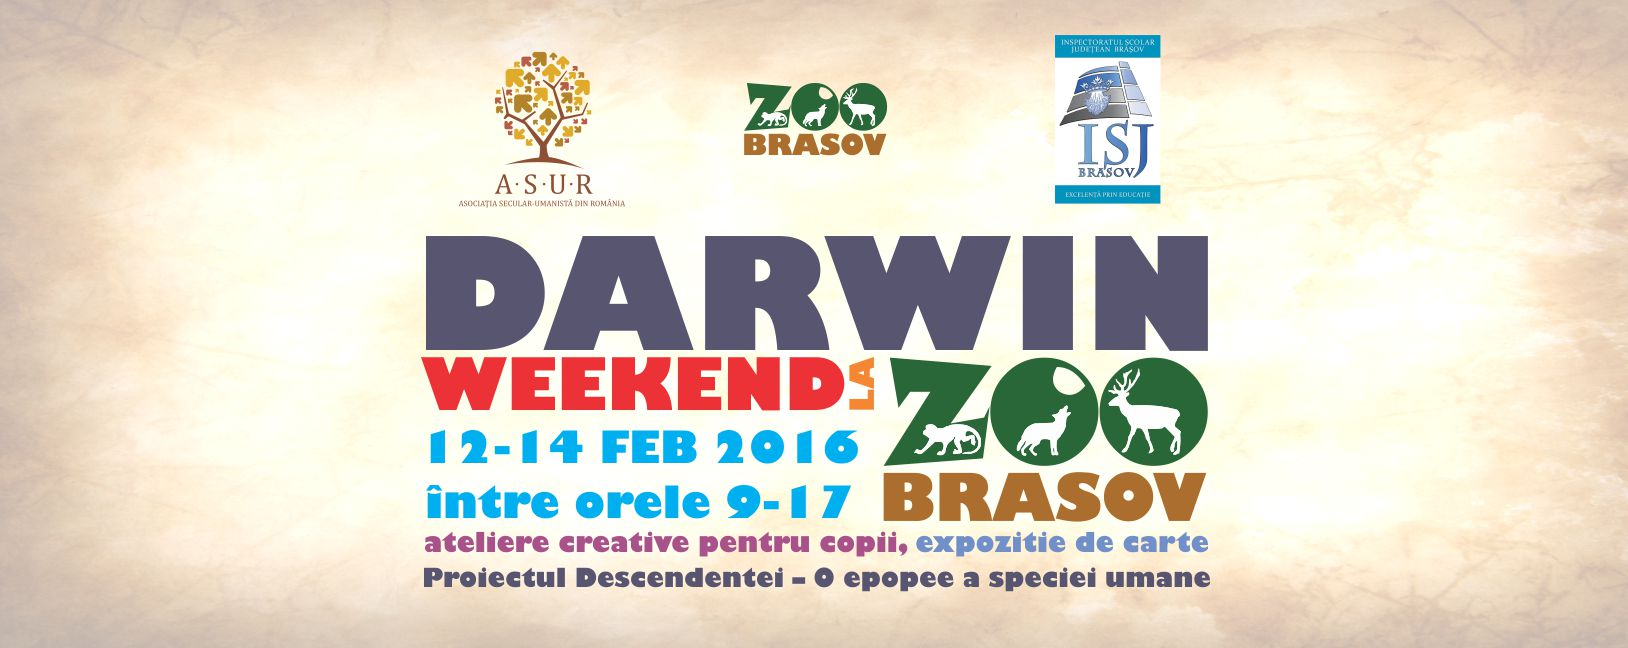 darwin-weekend-zoo-brasov-12-14-feb-2016